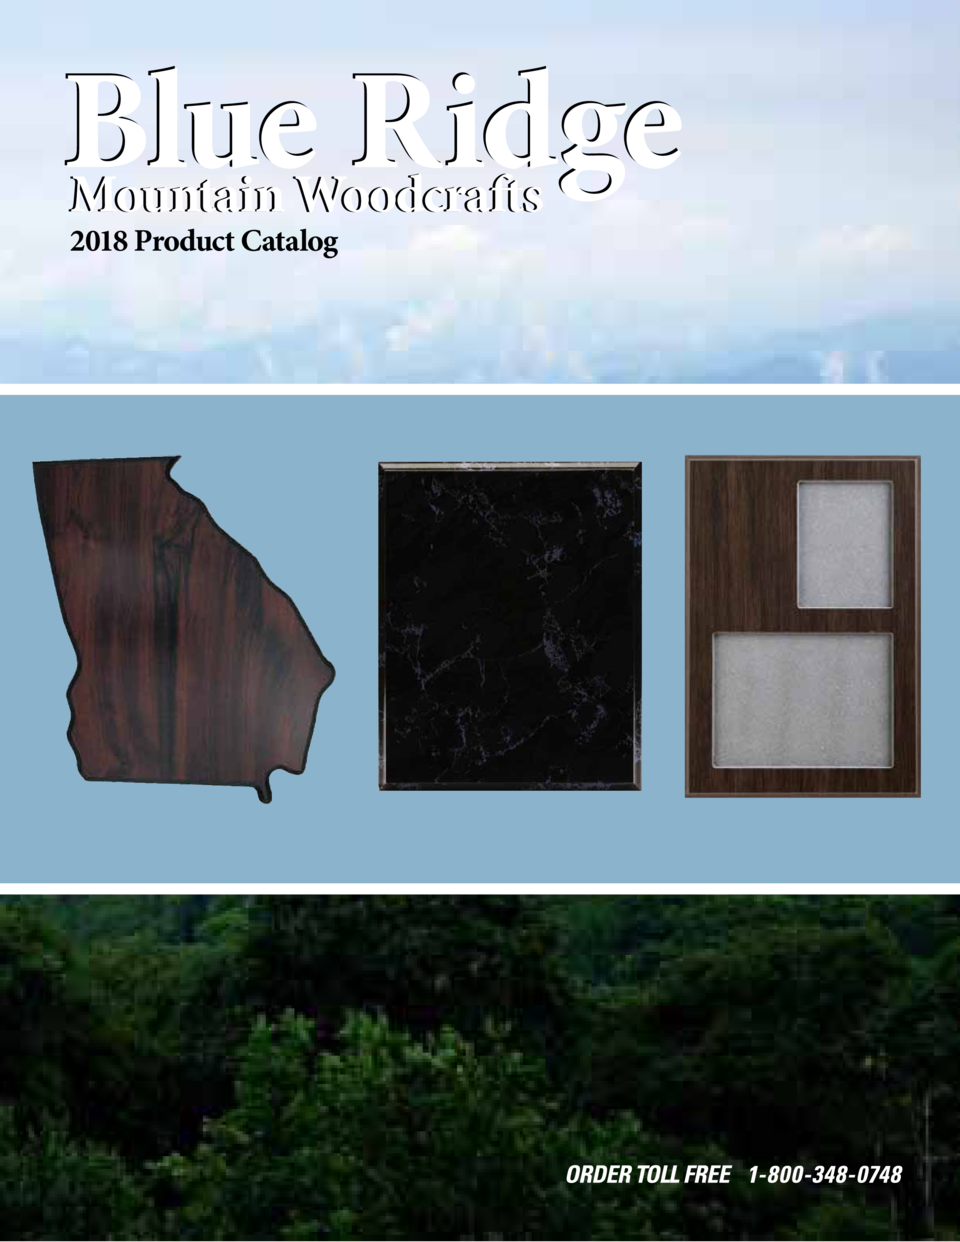 Blue Ridge 2018 Product Catalog